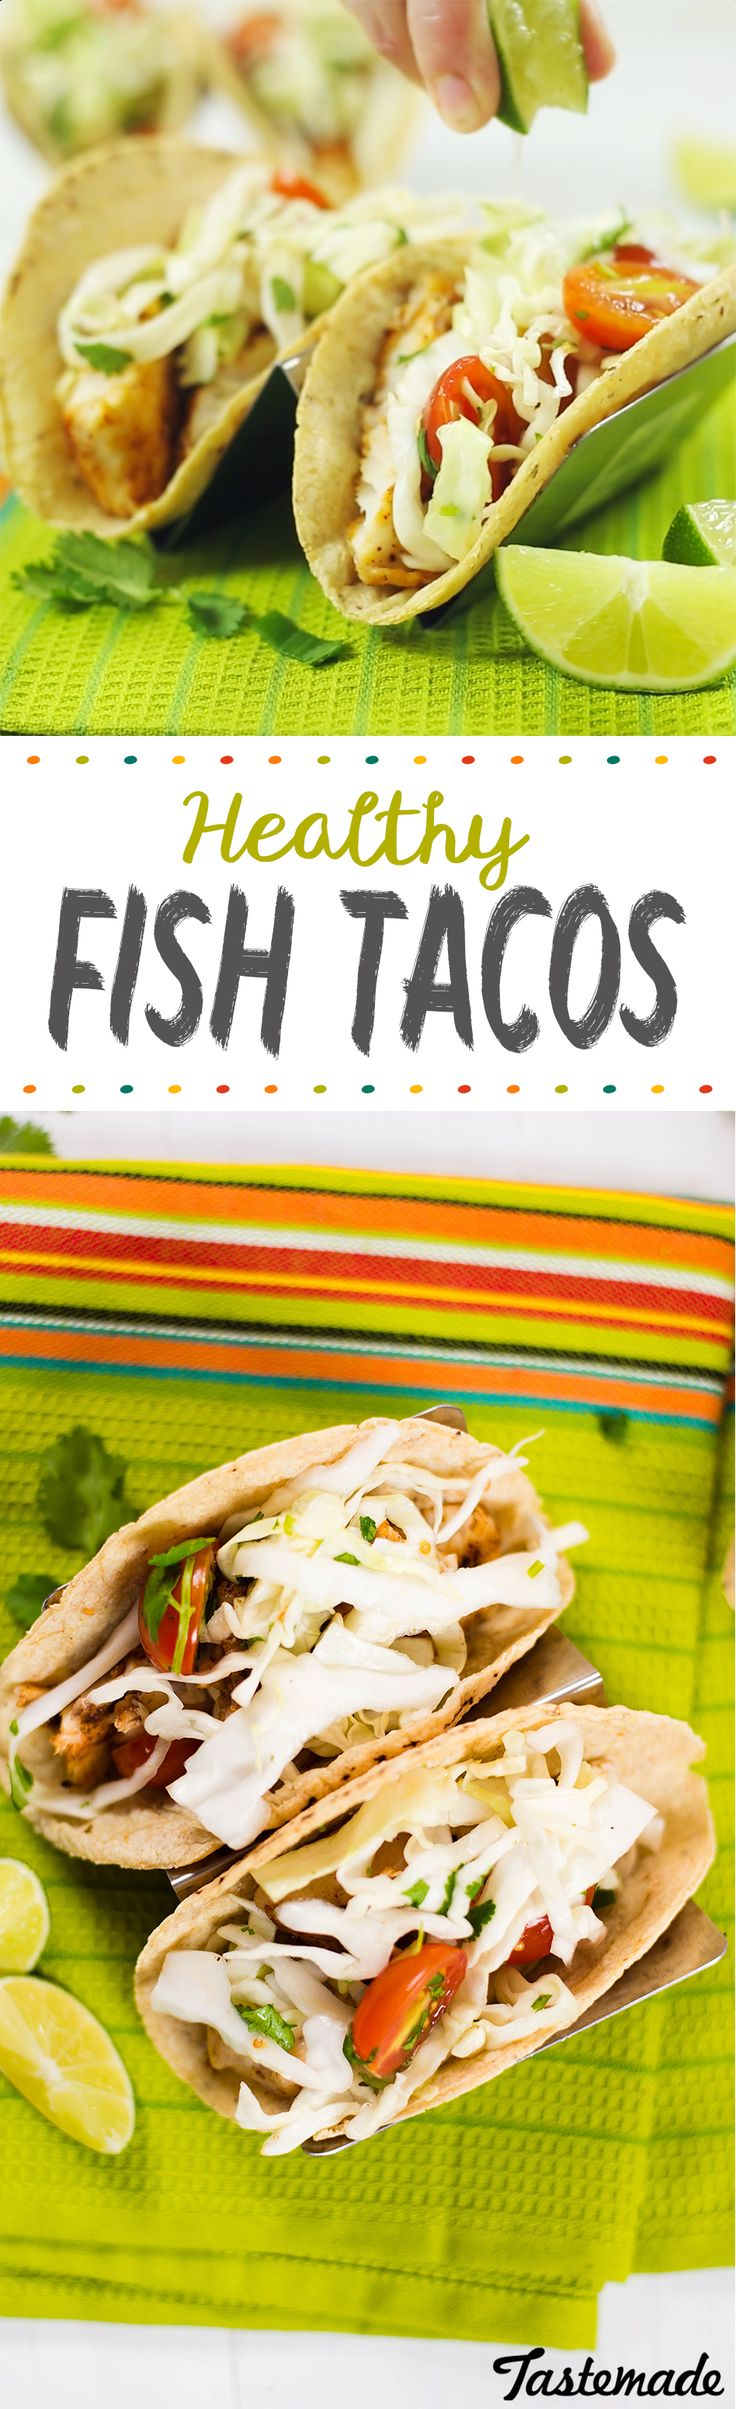 A lighter taco on taco night. These healthy fish tacos could not be easier to throw together. Save the recipe on our app! http://link.tastemade.com/HE7m/H1wHe4m2mA